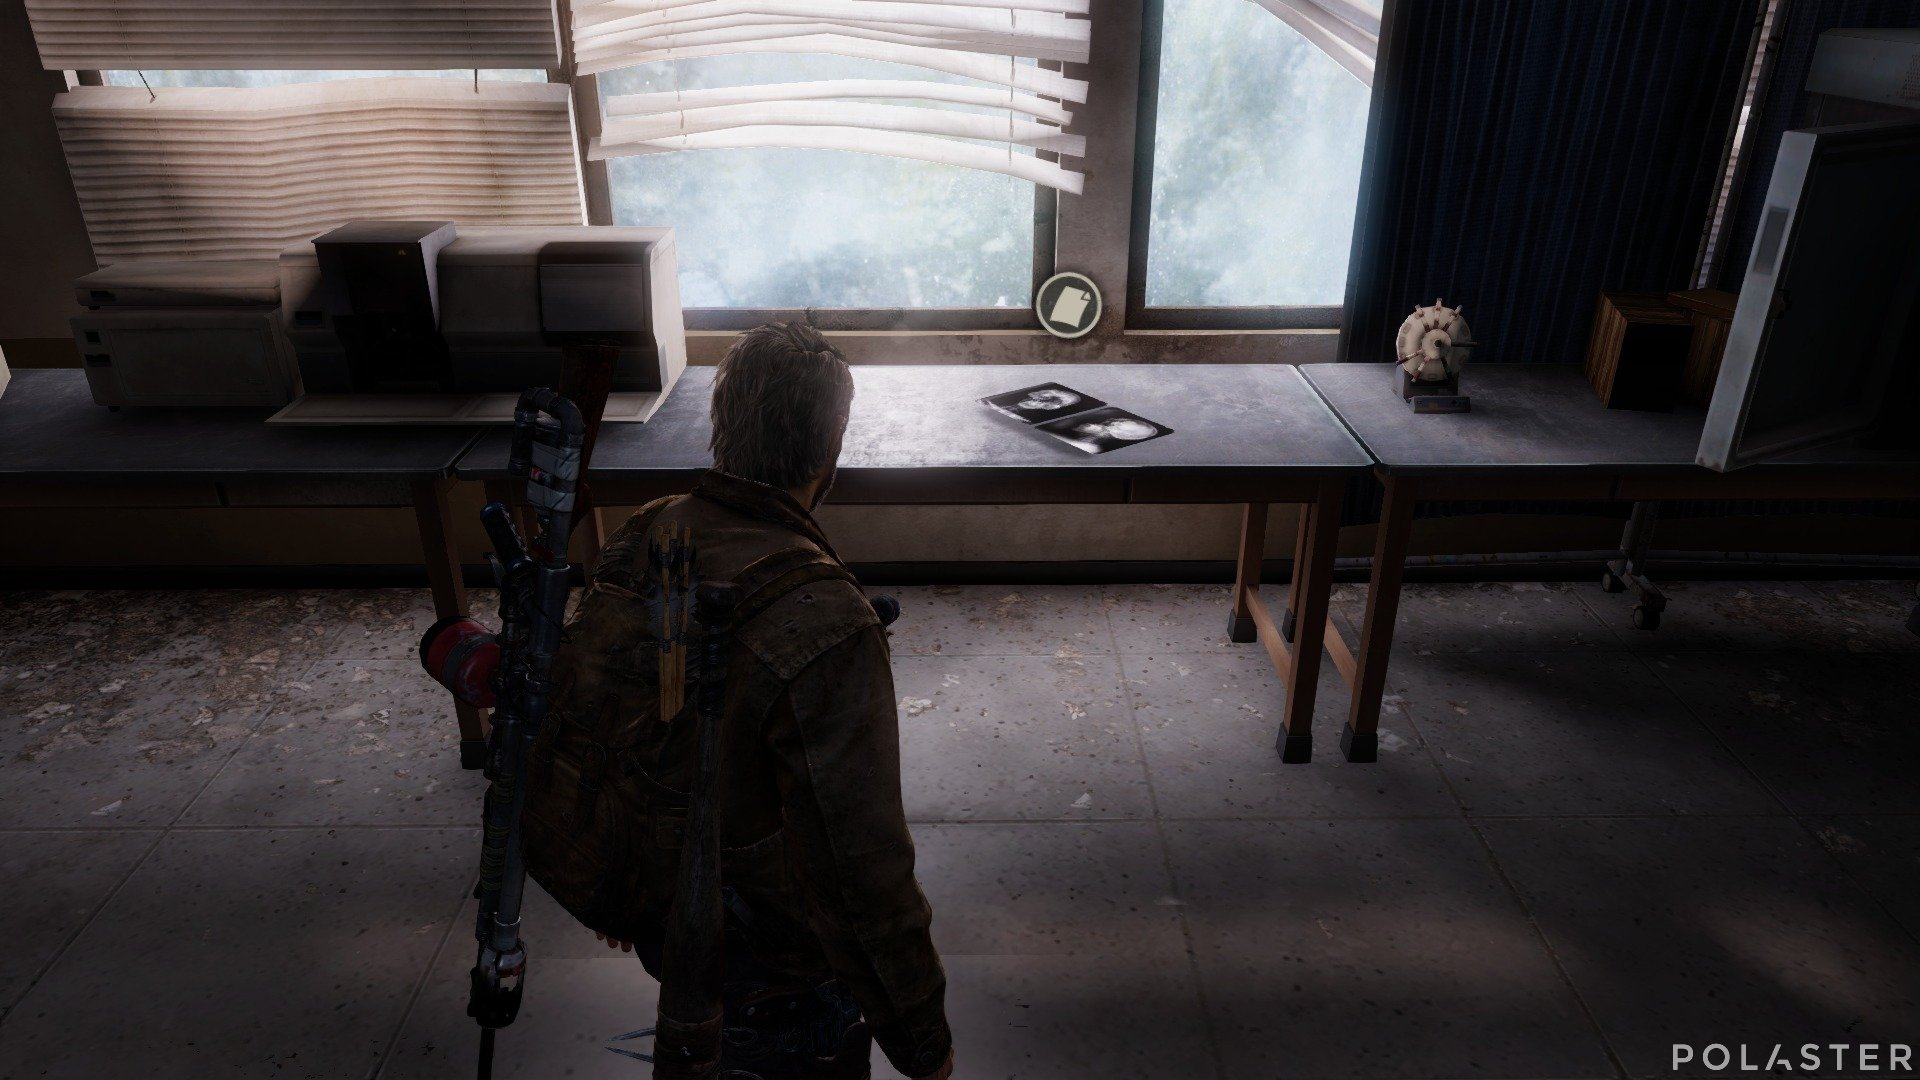 The Last of Us Artefacto Rayos X de hongos